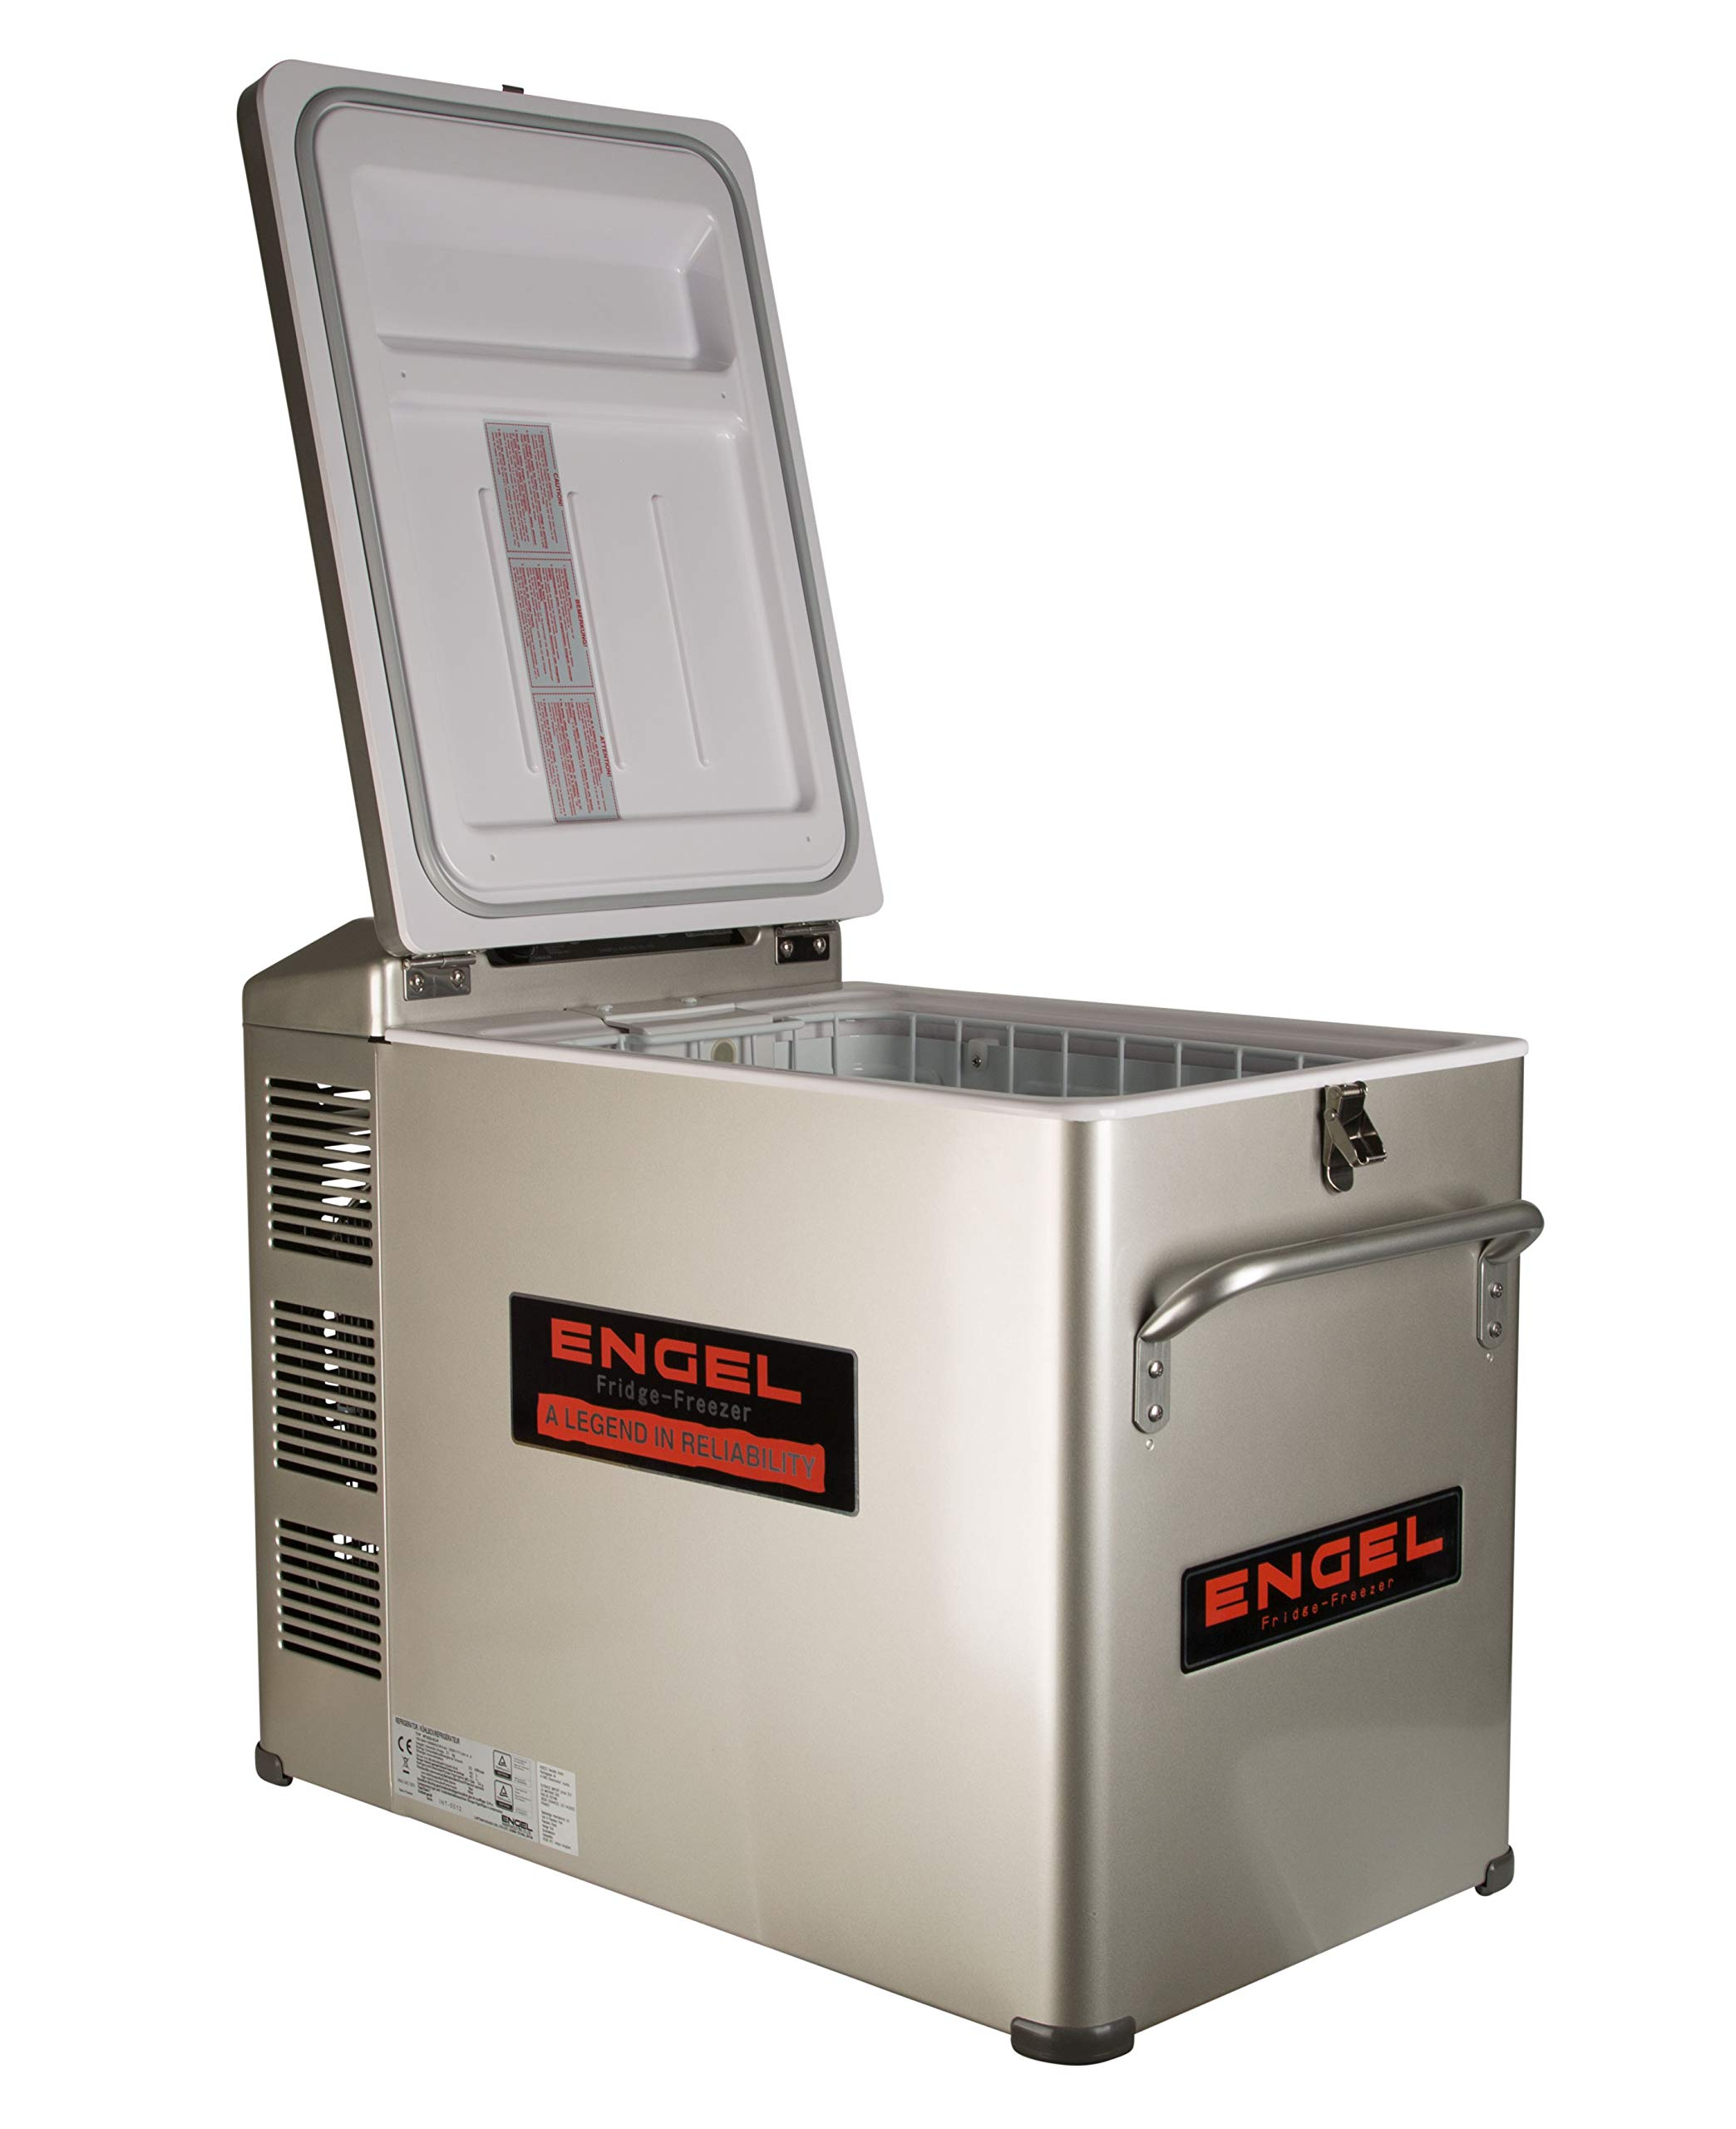 New Engel MT45 Platinum 12v/110v Fridge Freezer 2 Supplied with both AC and DC cords. Built-in battery monitor. 50th Anniversary Edition of the Engel MT45.